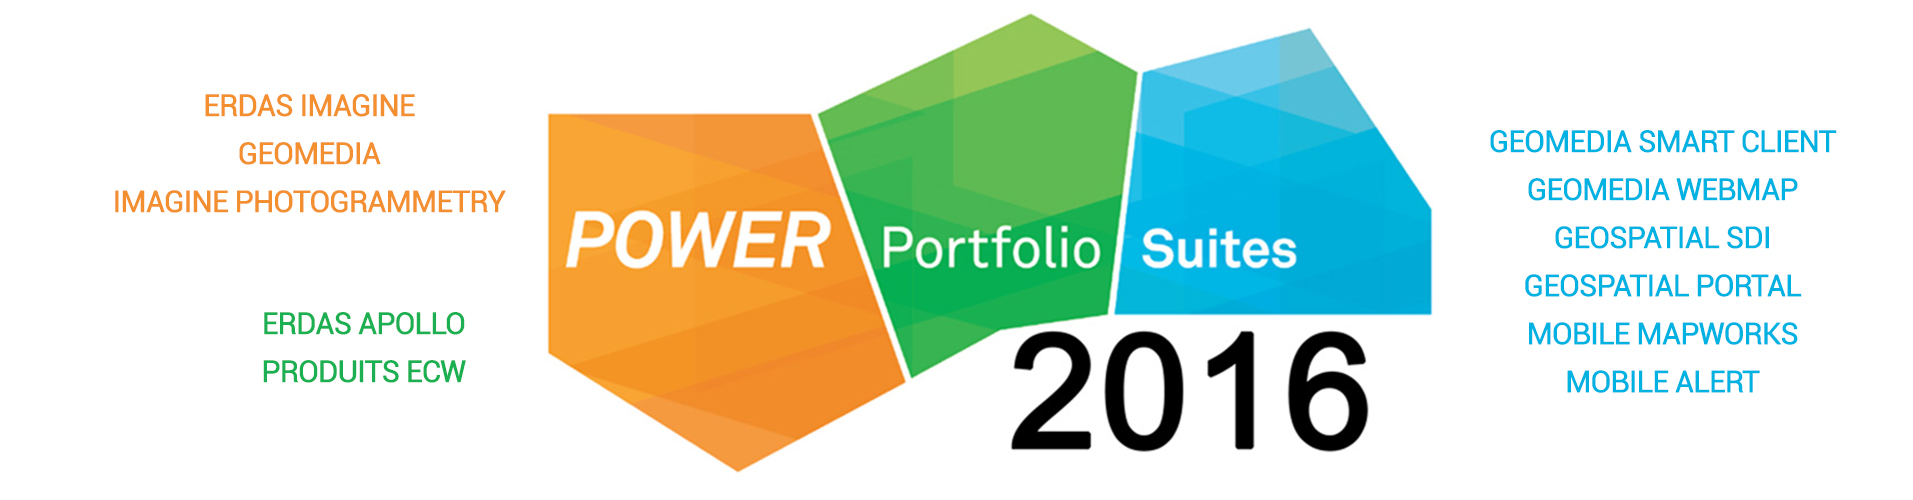 POWER PORTFOLIO SUITES 2016